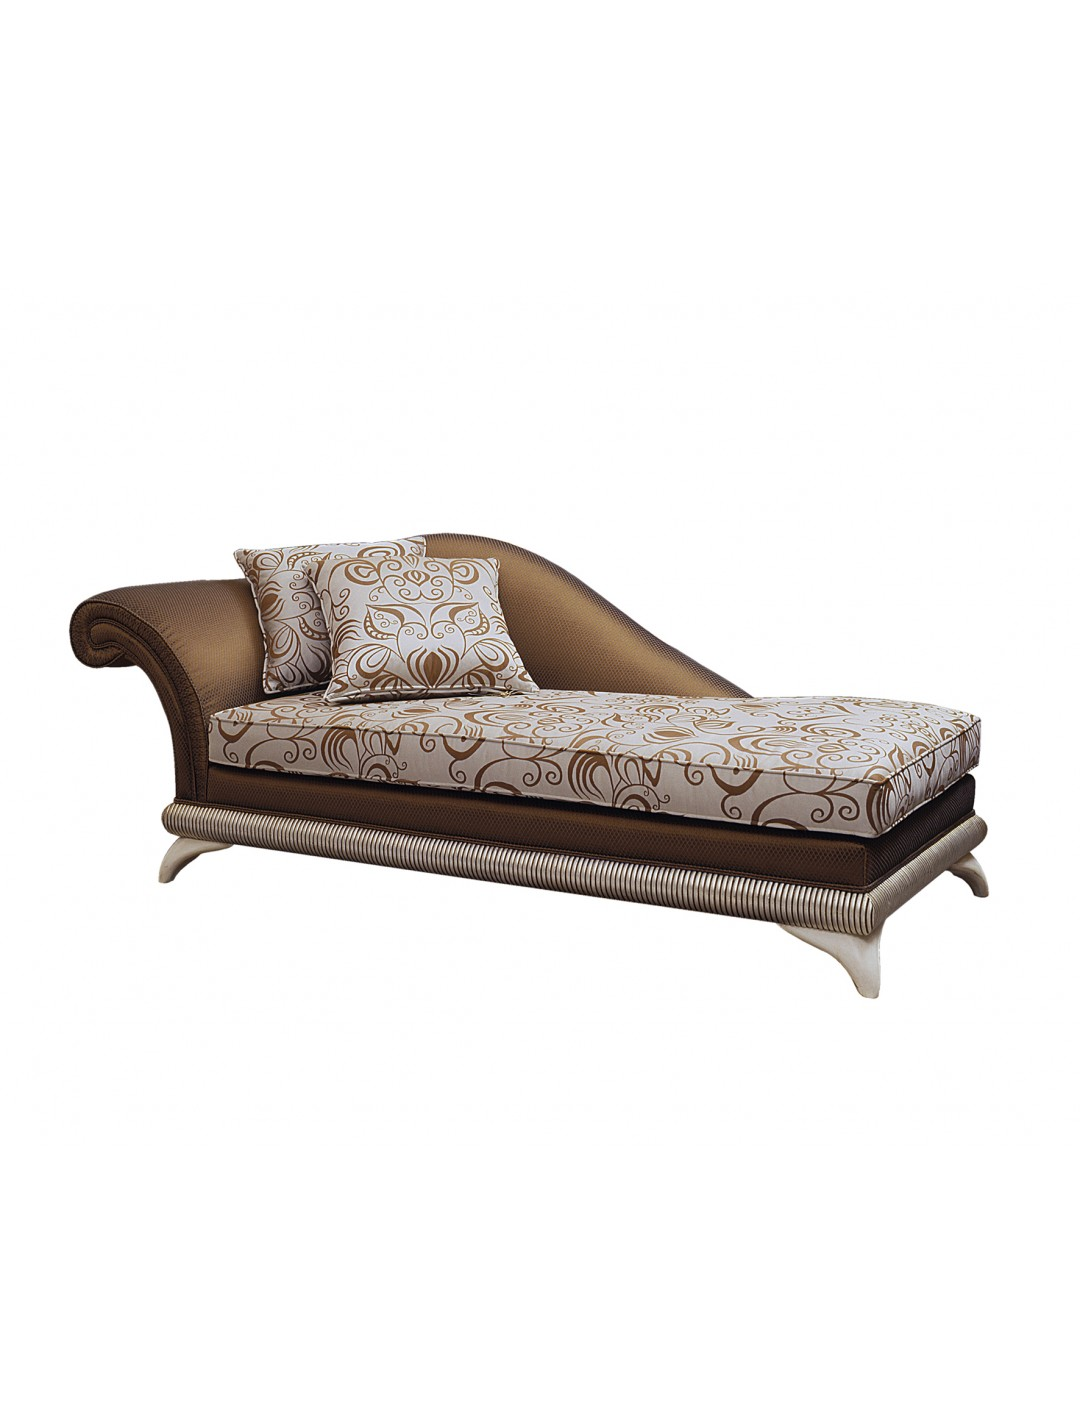 DECO CHAISE LONGUE, ARM ON THE LEFT,WITH TWO 50*50 CM CUSHIONS INCLUDED, C.O.M.